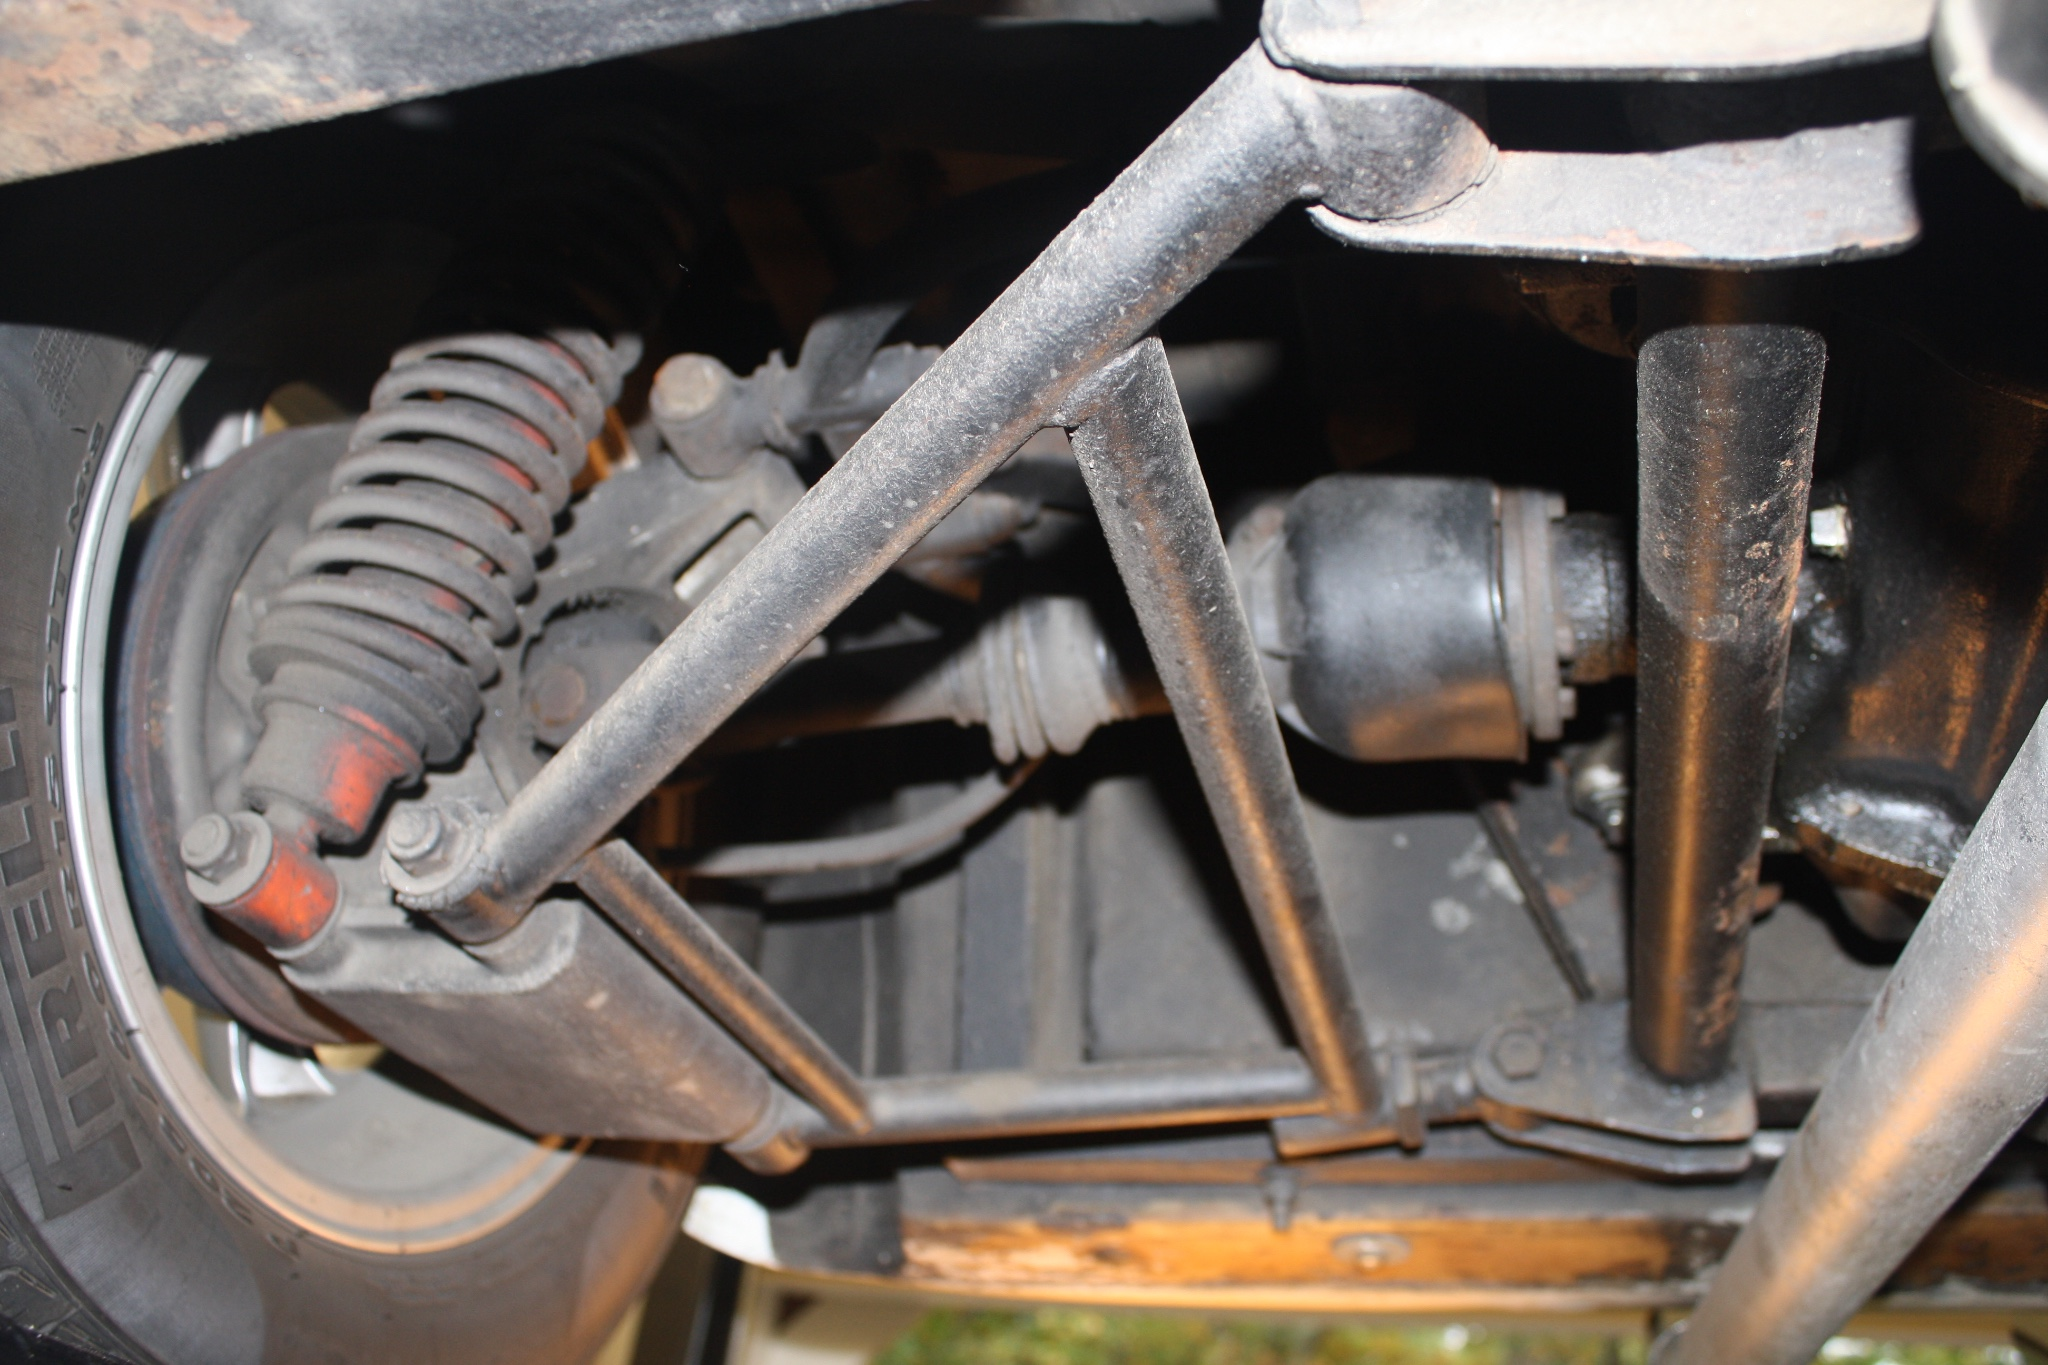 The rear suspension has been kept owner repairable and uses mostly stock Triumph parts.